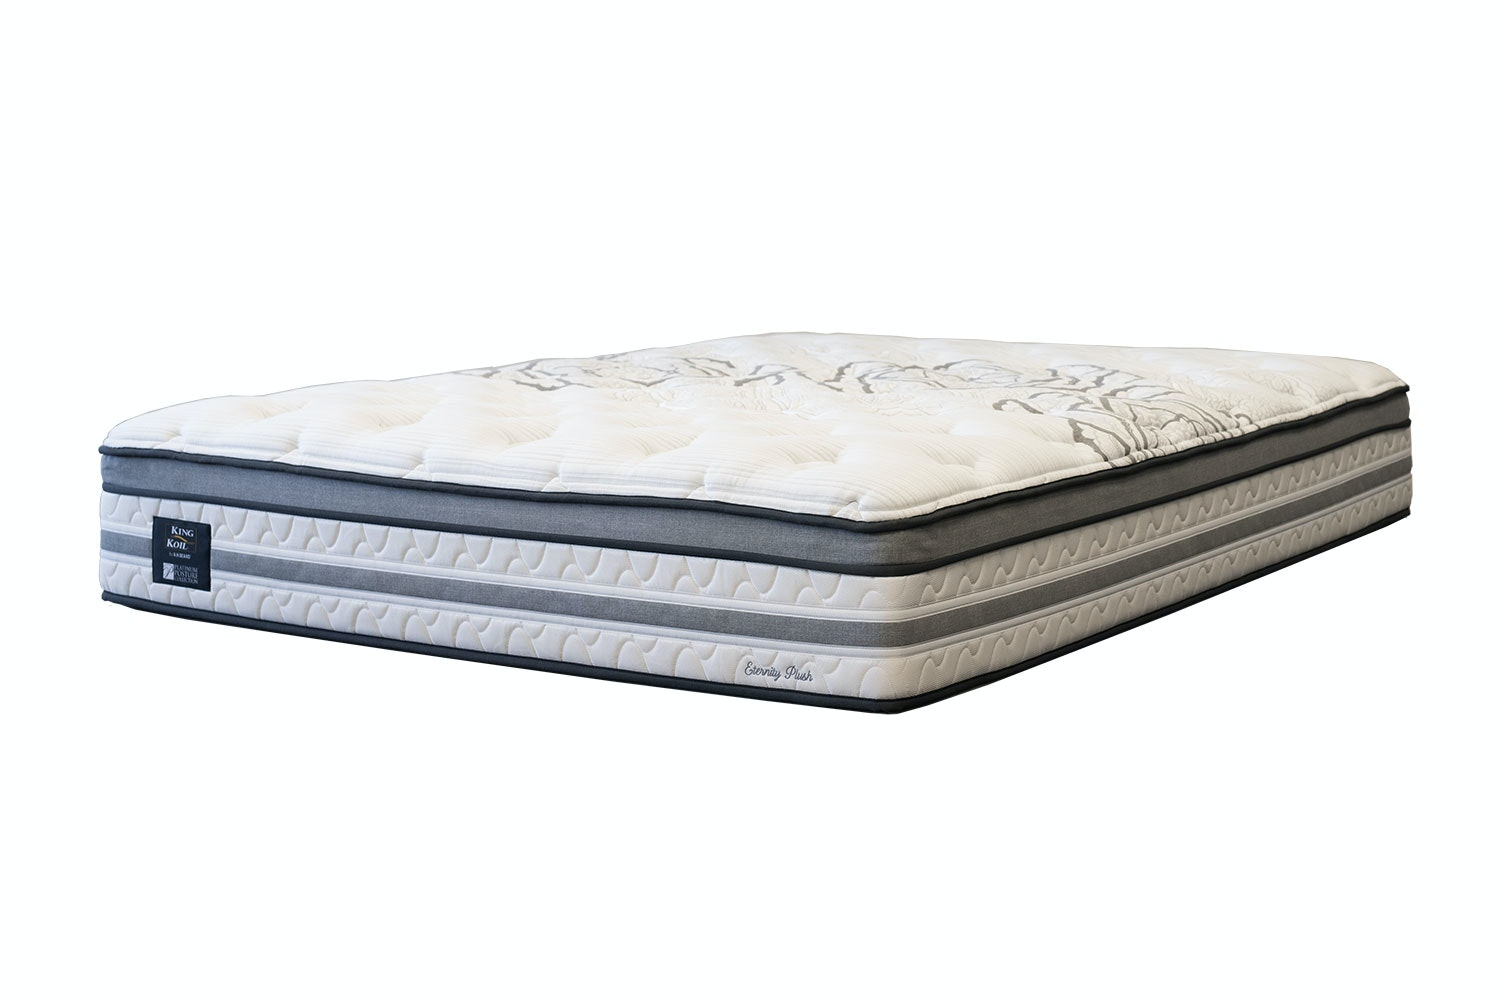 Eternity Plush Double Mattress by King Koil